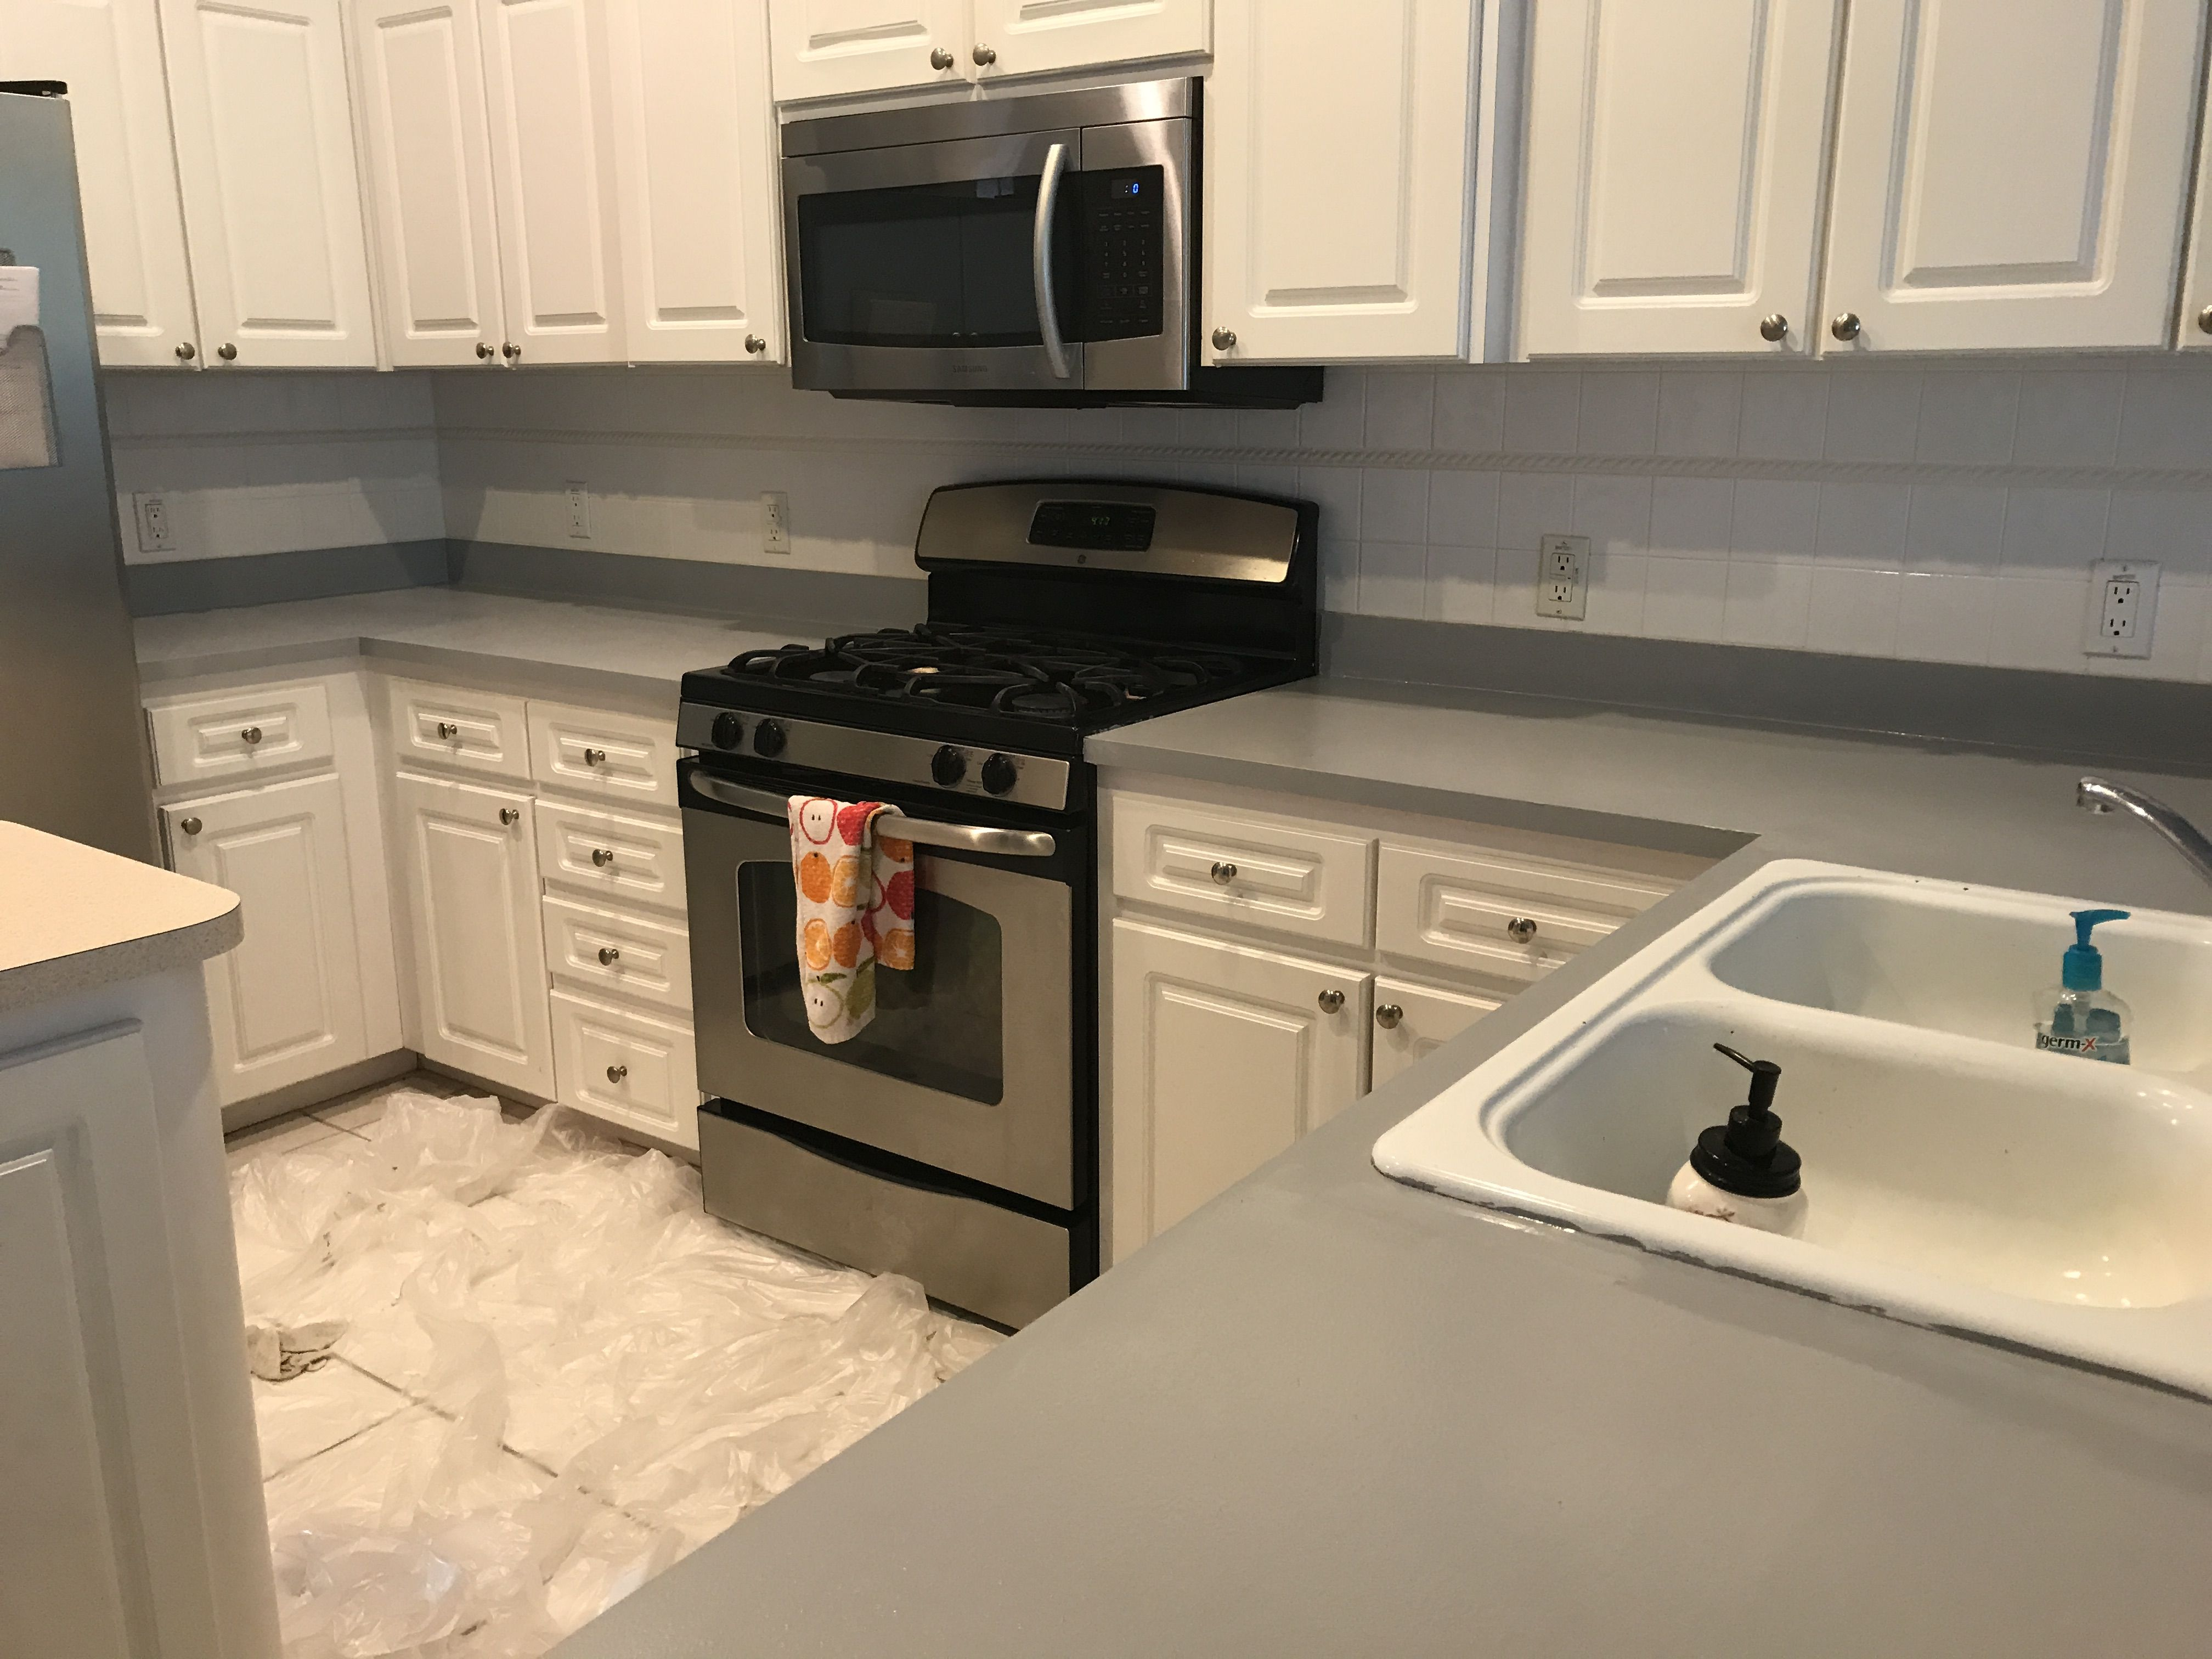 Pin on My Ugly Kitchen Counter Renovation